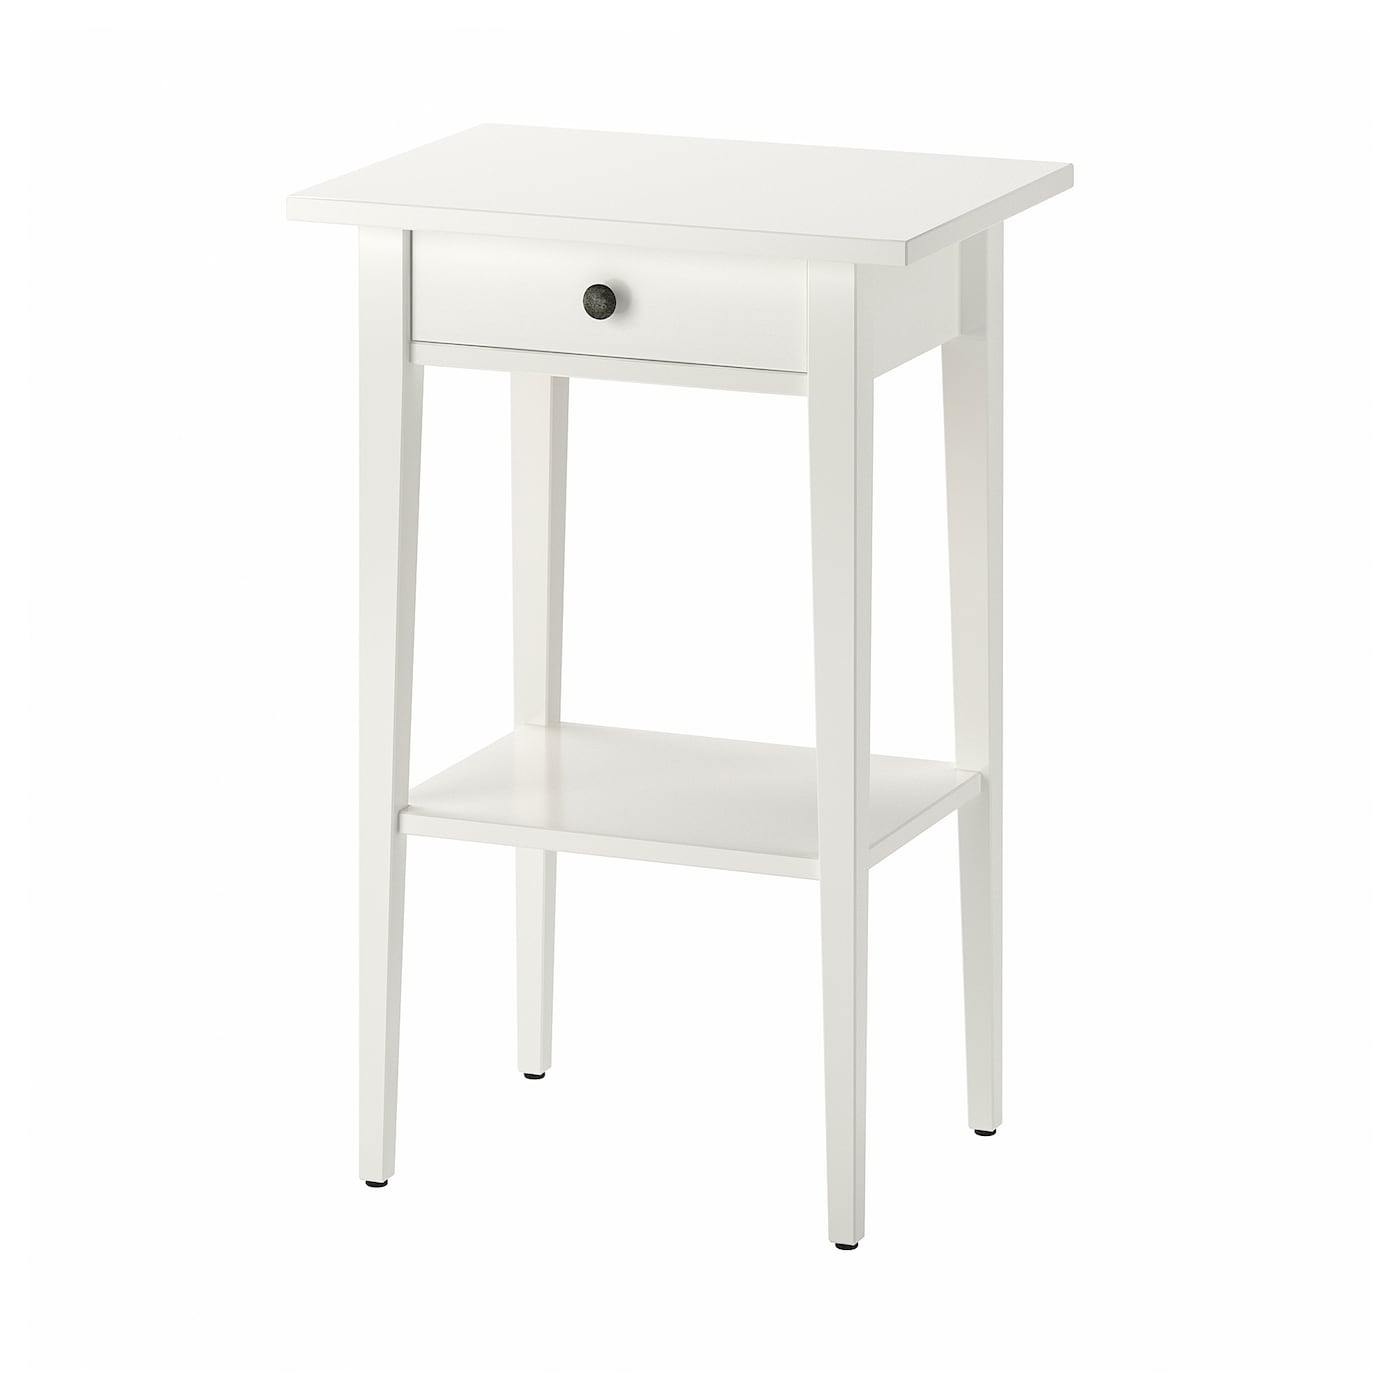 Ikea Table De Nuit hemnes table de chevet - blanc 46x35 cm